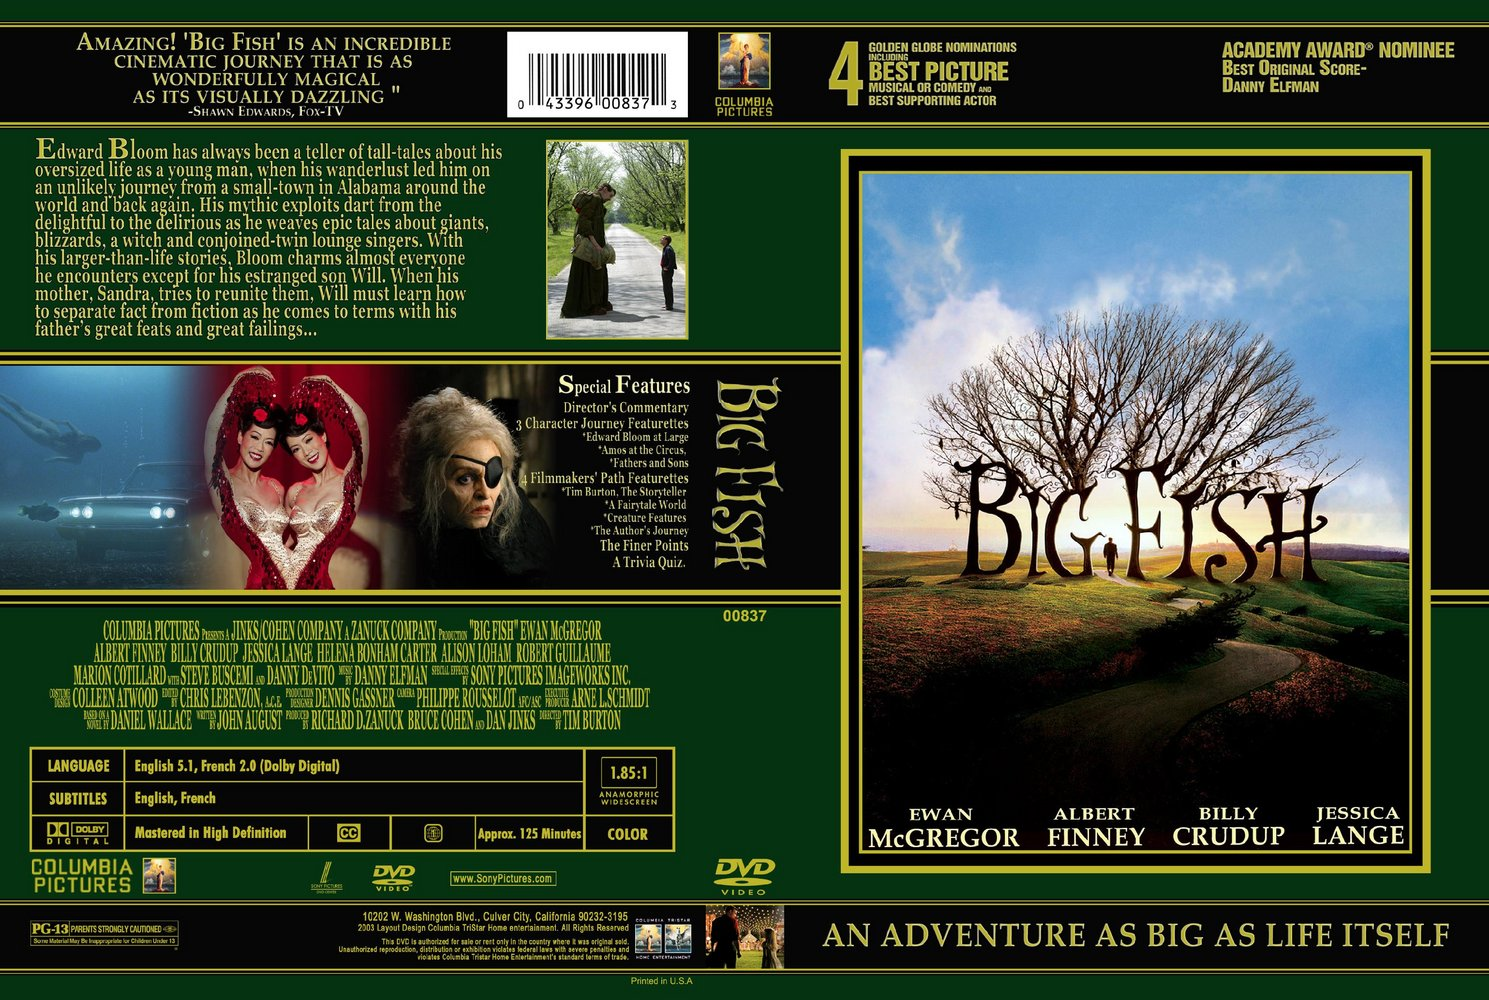 Big Fish Movie Dvd Front back Cover